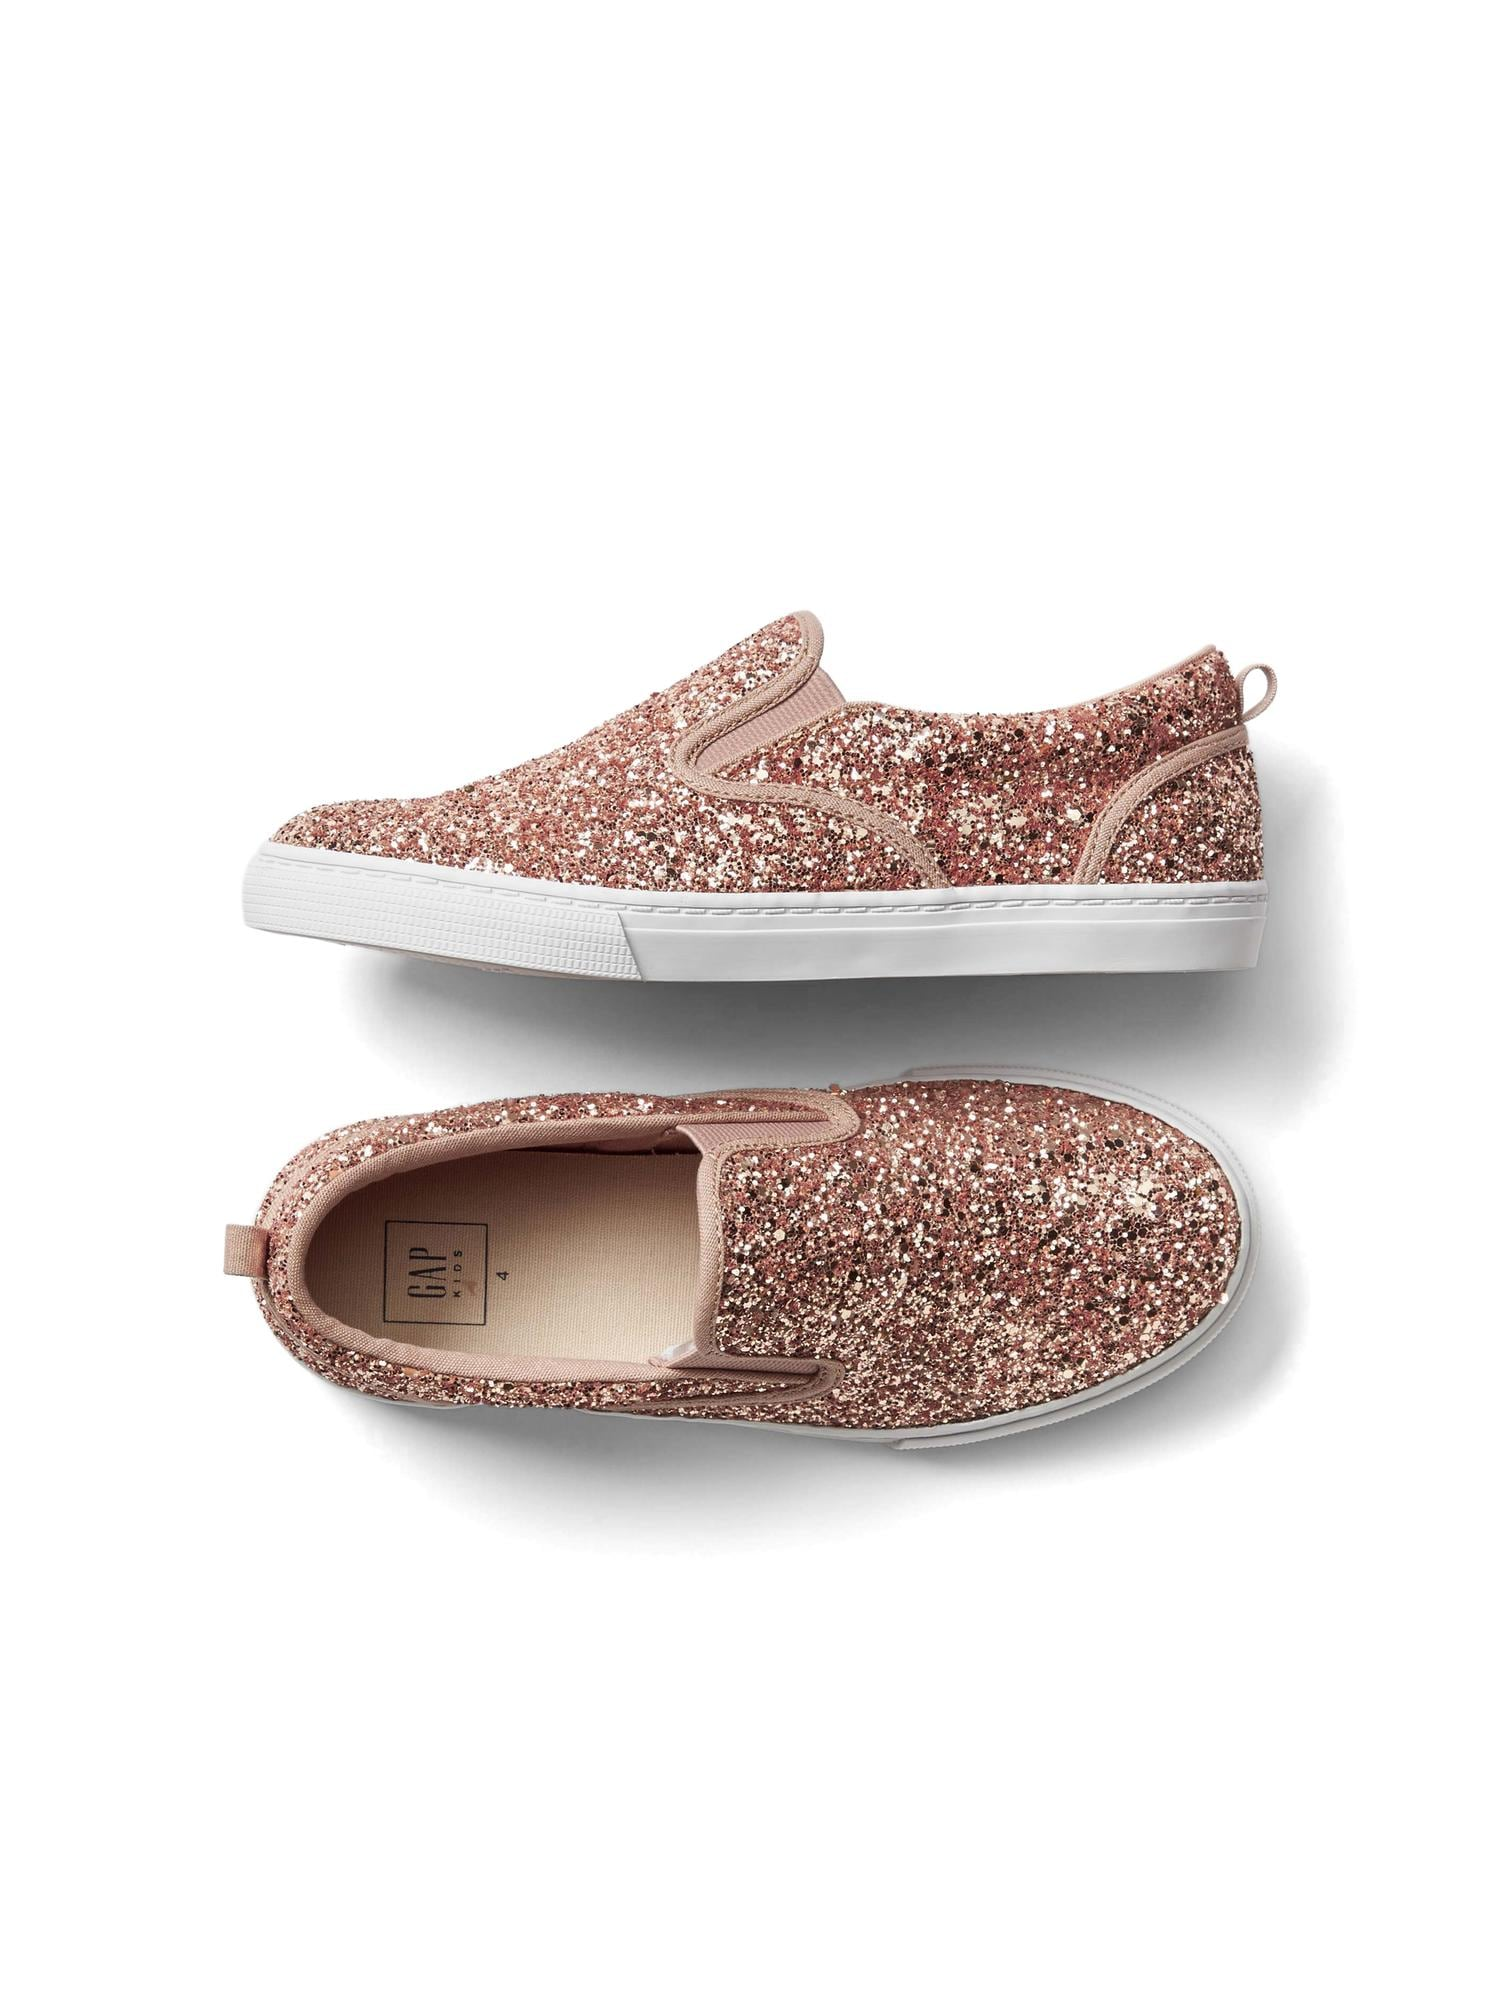 ea4c7a77dc68 Kids Glitter Slip-On Sneakers | Gap